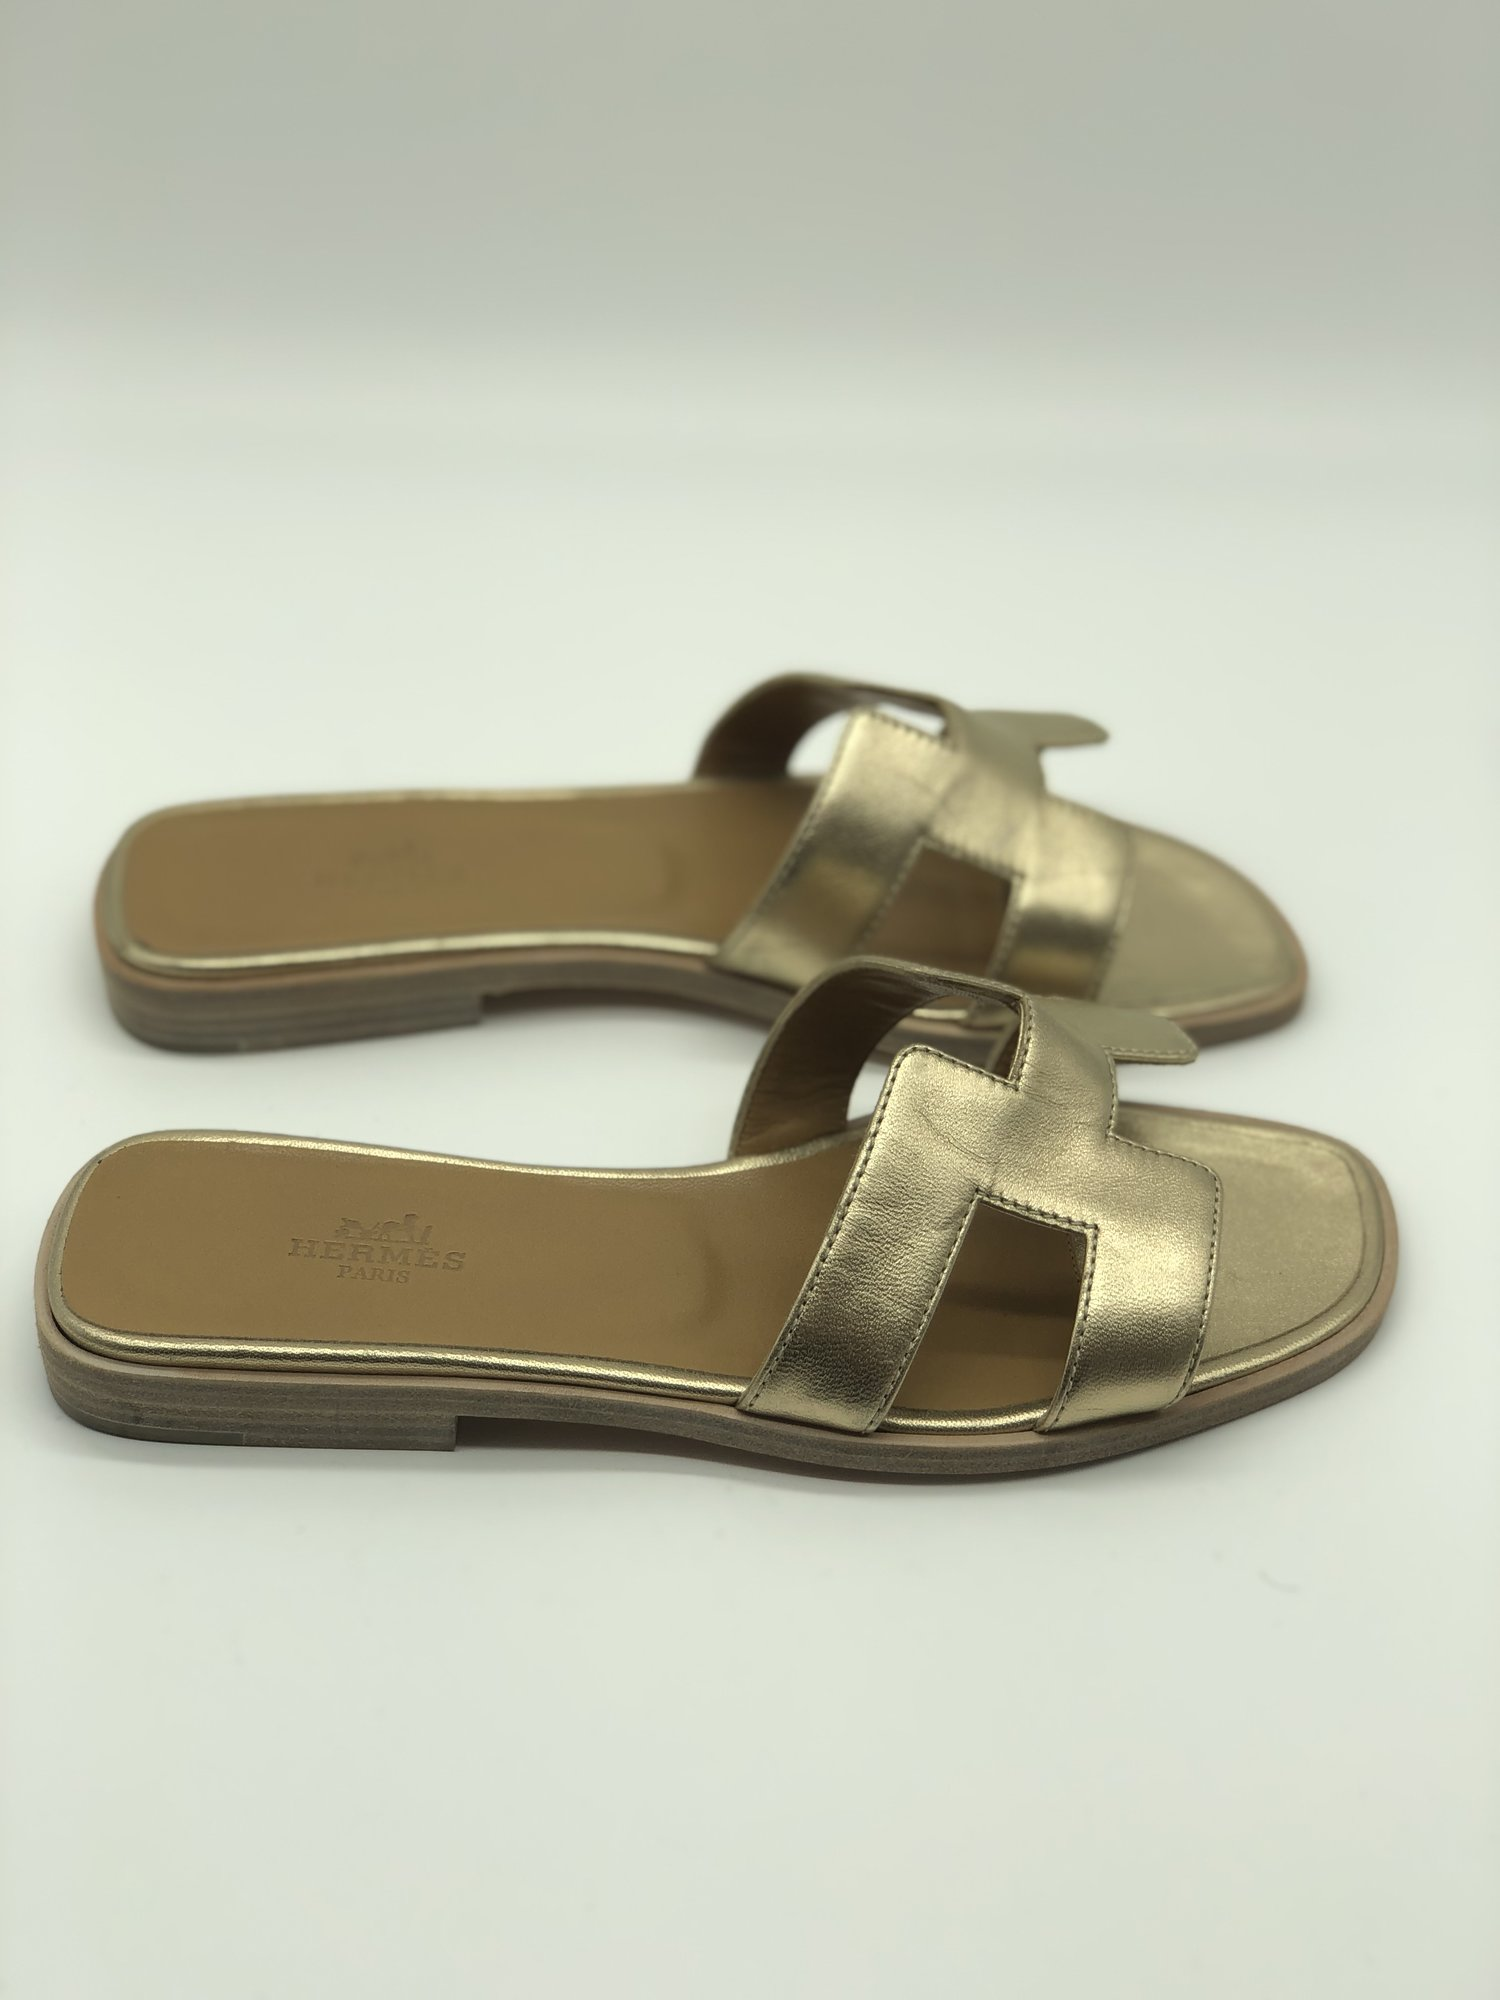 Hermes Oran Sandal, Gold, Size: 36<br /> <br /> Condition: EXCELLENT. Like new